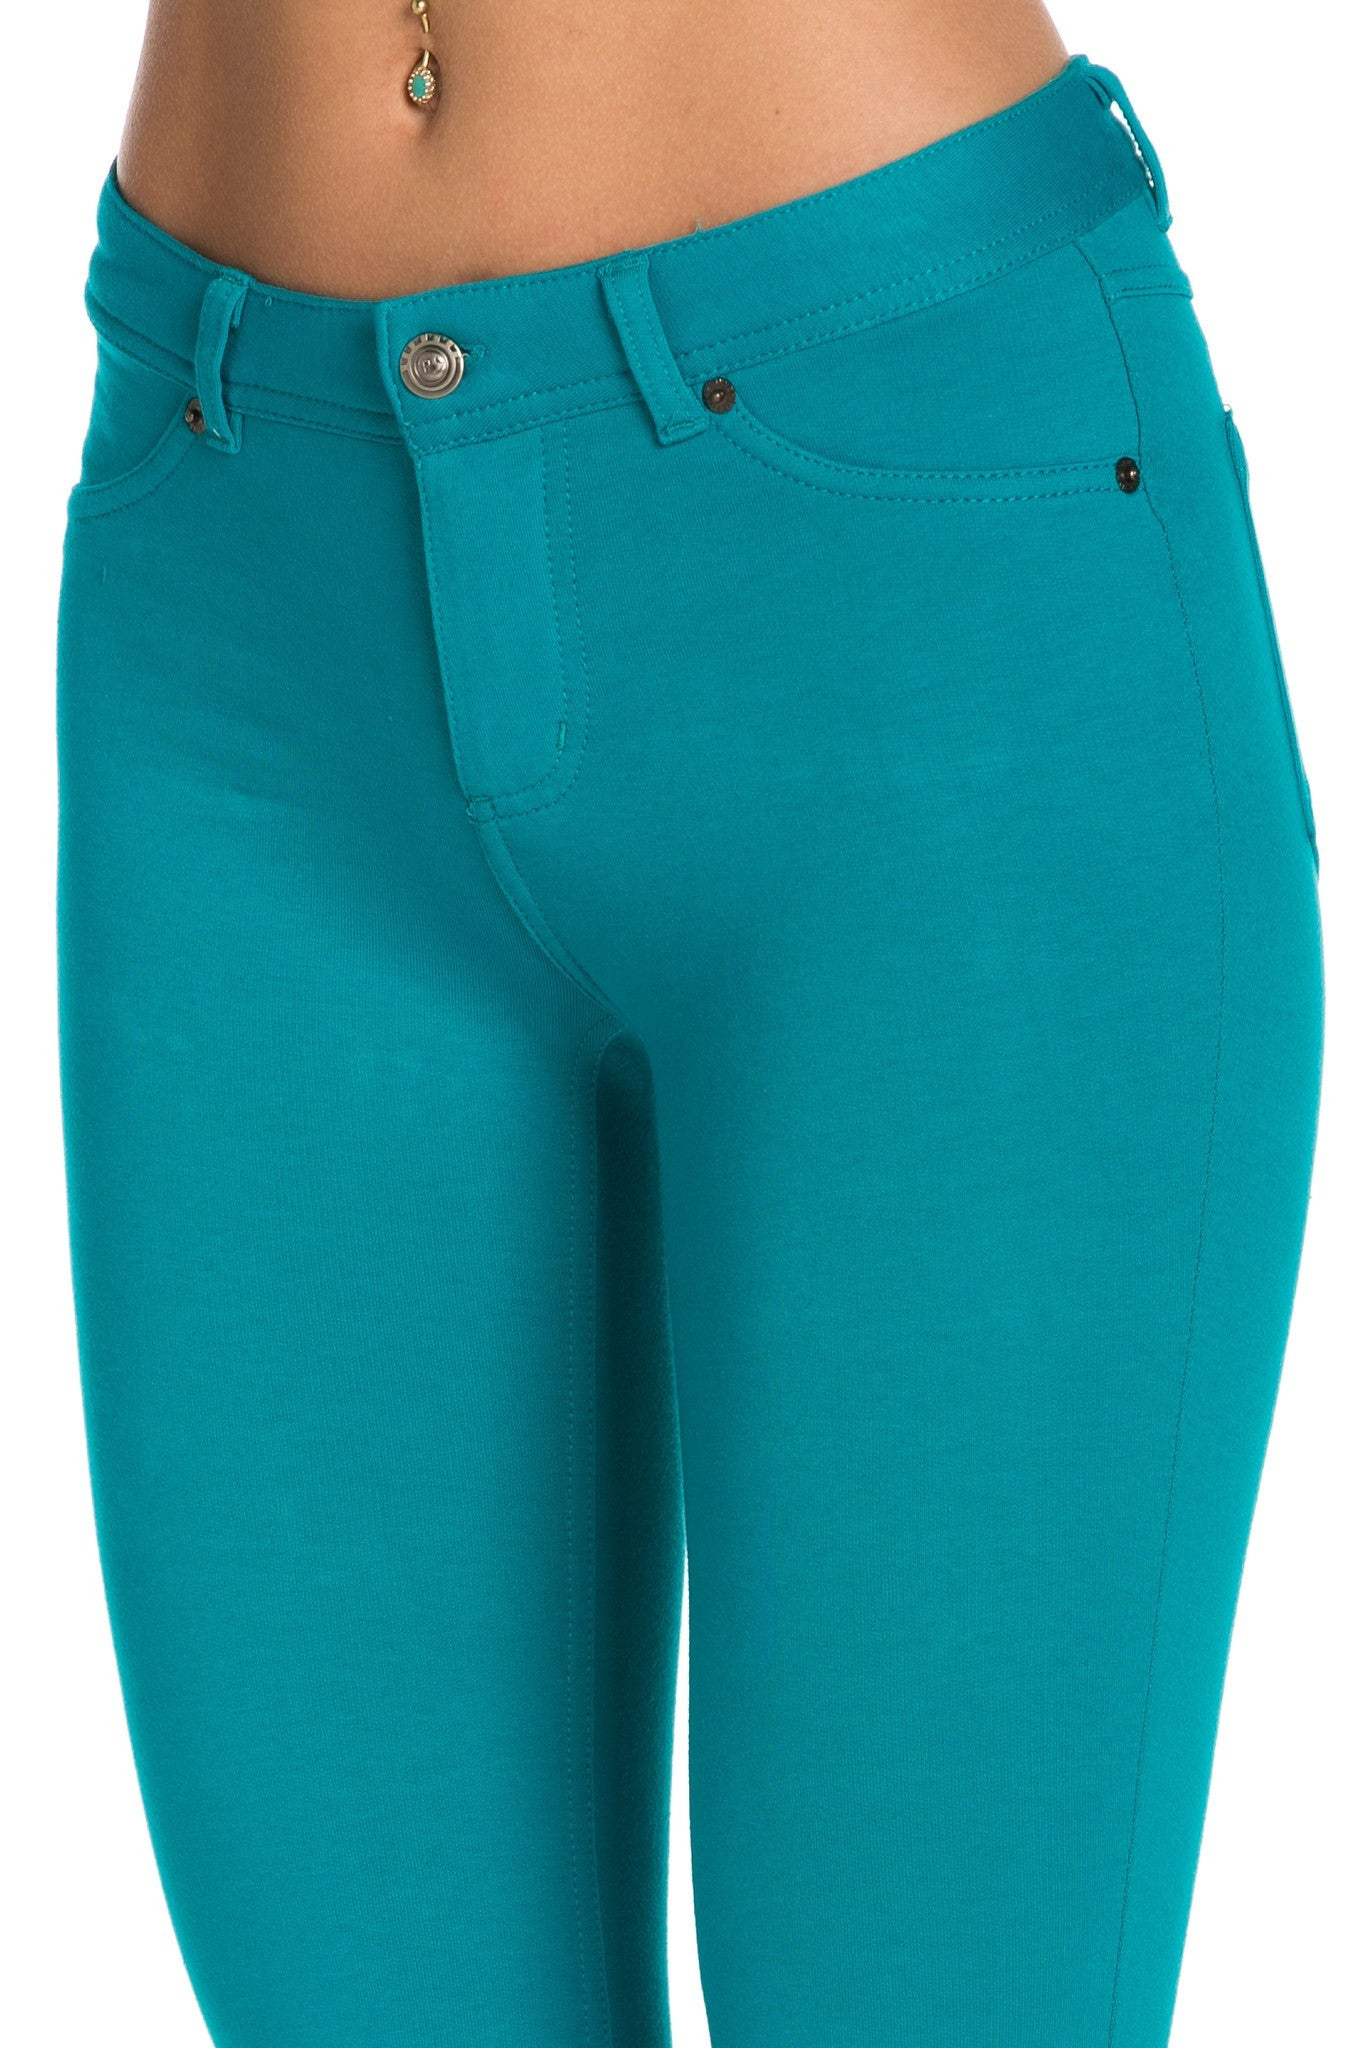 Stretch Skinny Knit Jegging Pants (Emerald Green) - Poplooks